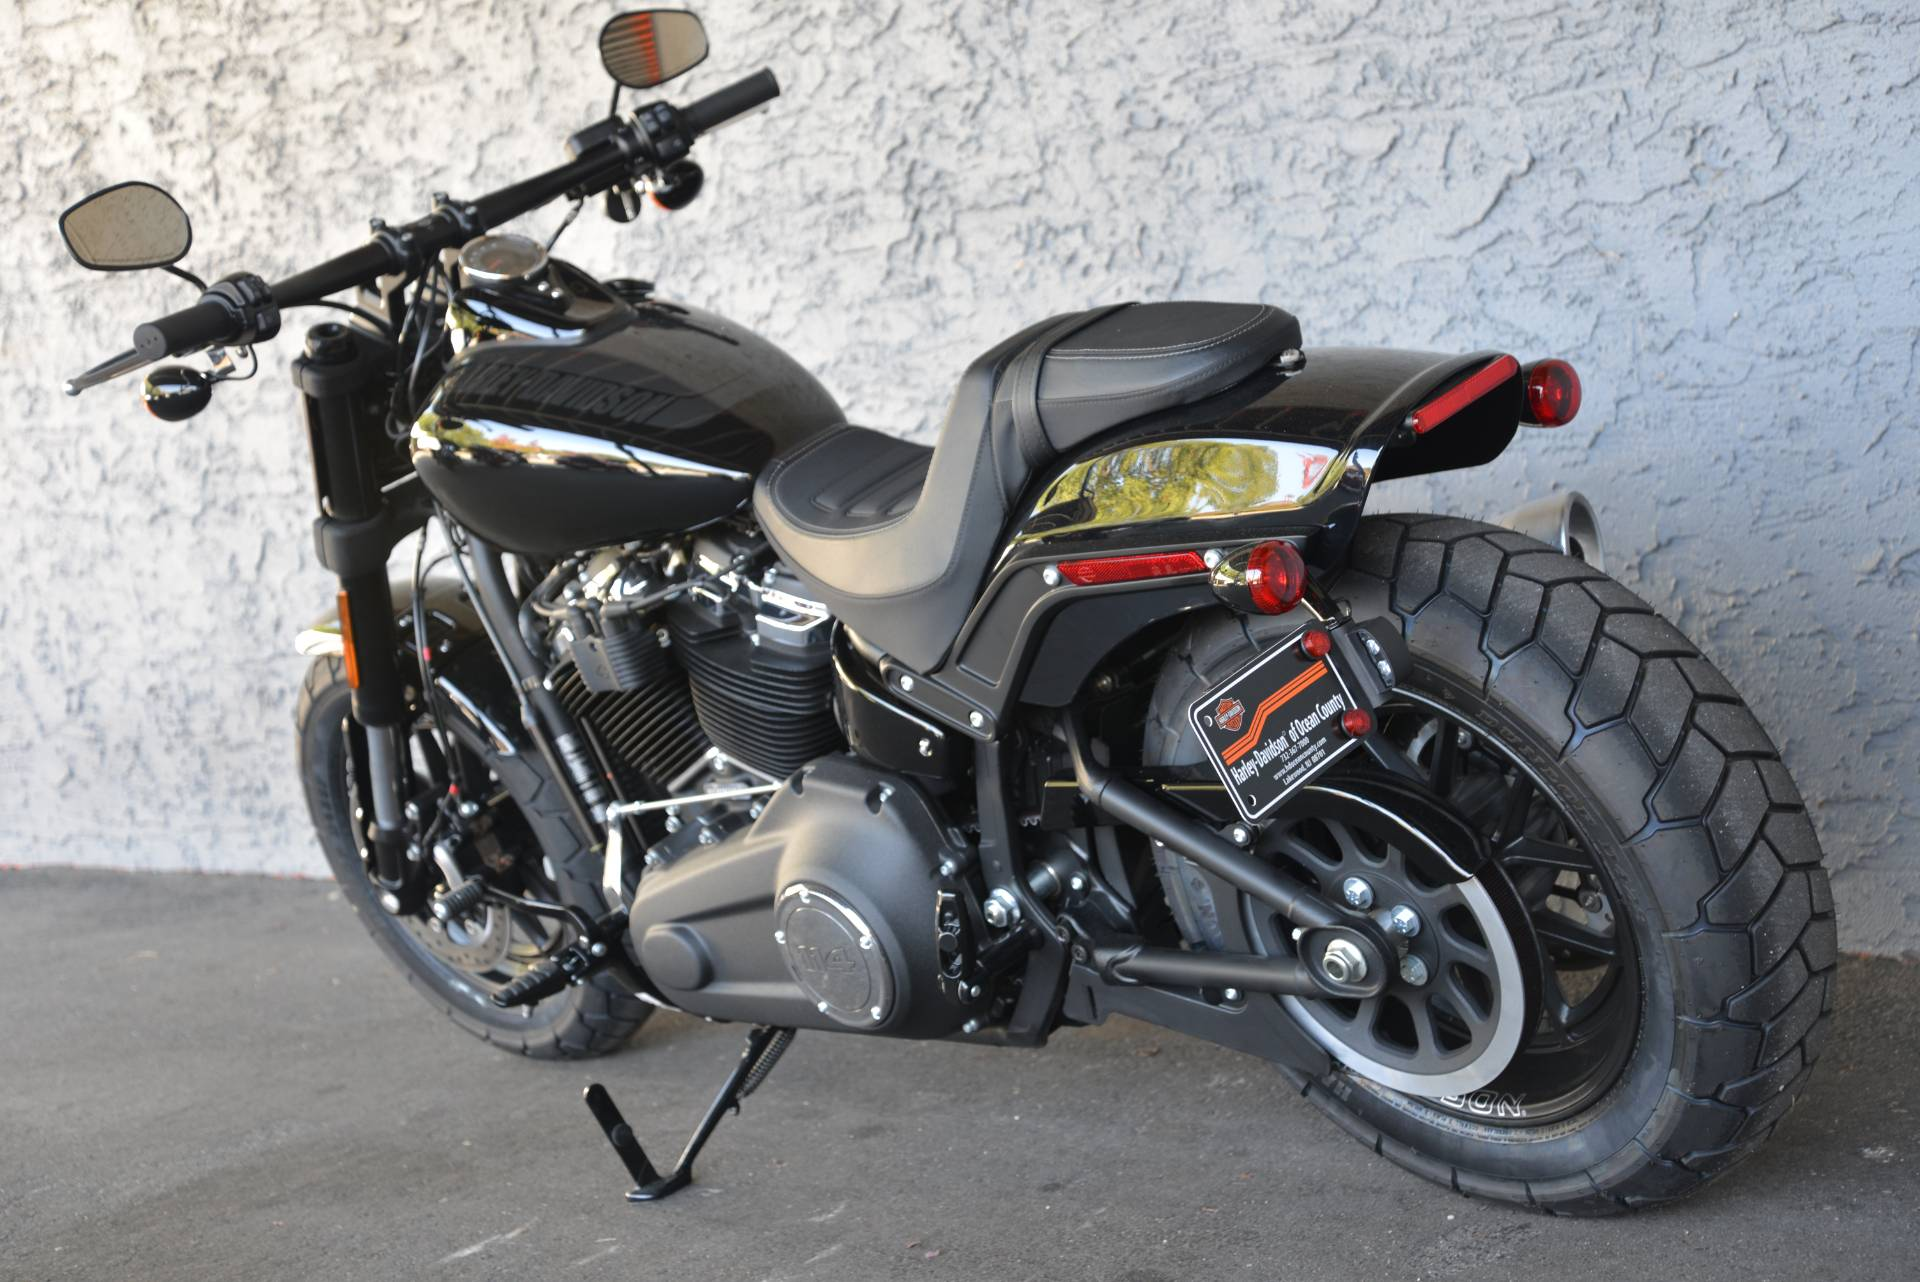 2019 Harley-Davidson FATBOB S in Lakewood, New Jersey - Photo 13